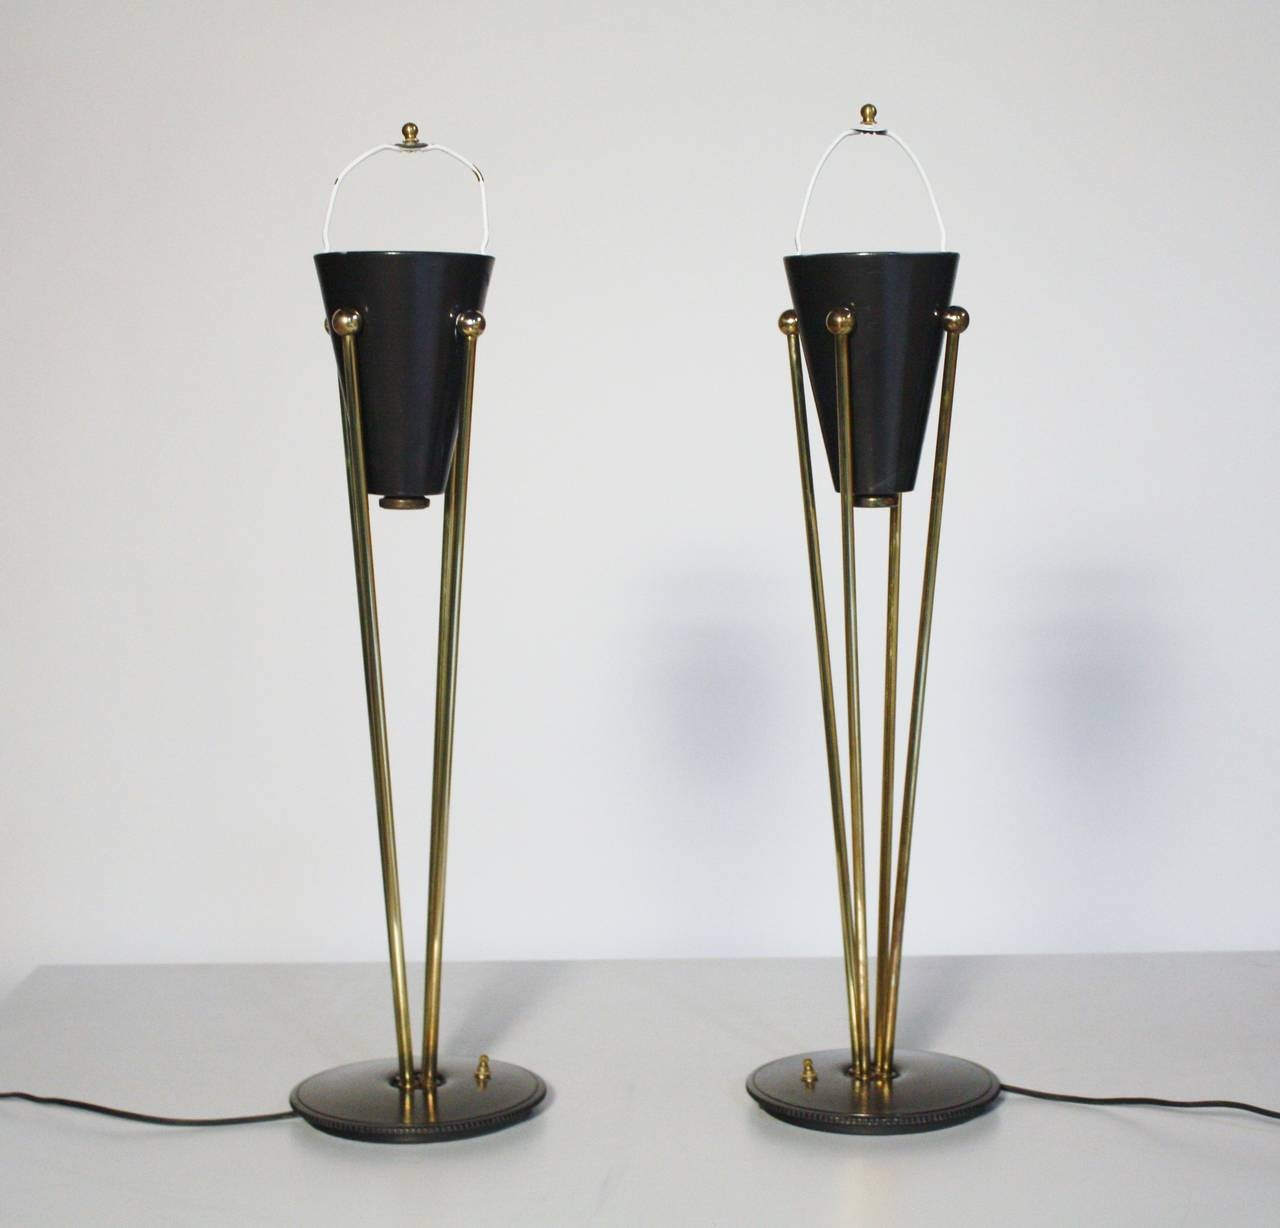 Pair of Stiffel lamps by Gerald Thursten. Brass tripod design with restored linen drum shades and diffused plexiglass filters. Base has a convenient power switch.